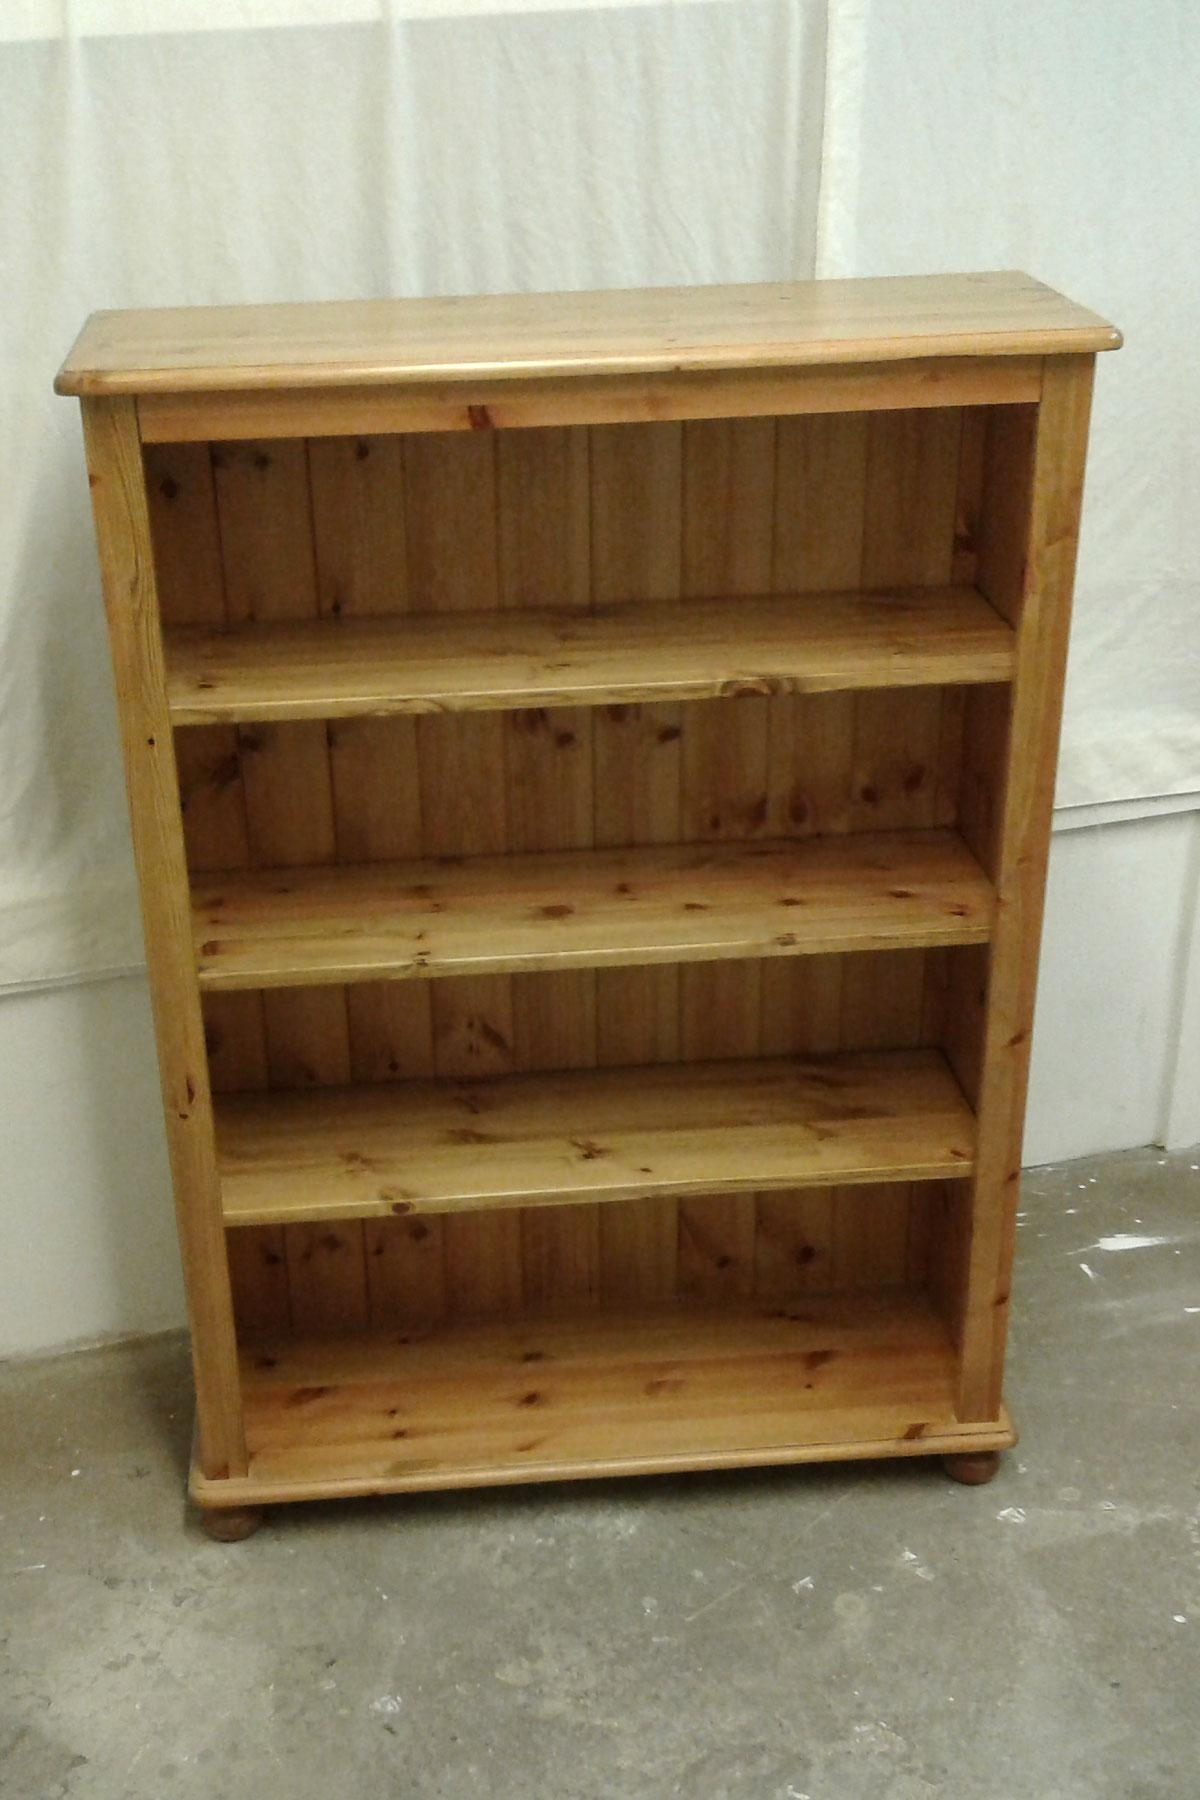 Fashionable Pine Bookcases For Pine Bookcase And Pine Book Shelves From The Home Pine Furniture (View 6 of 15)